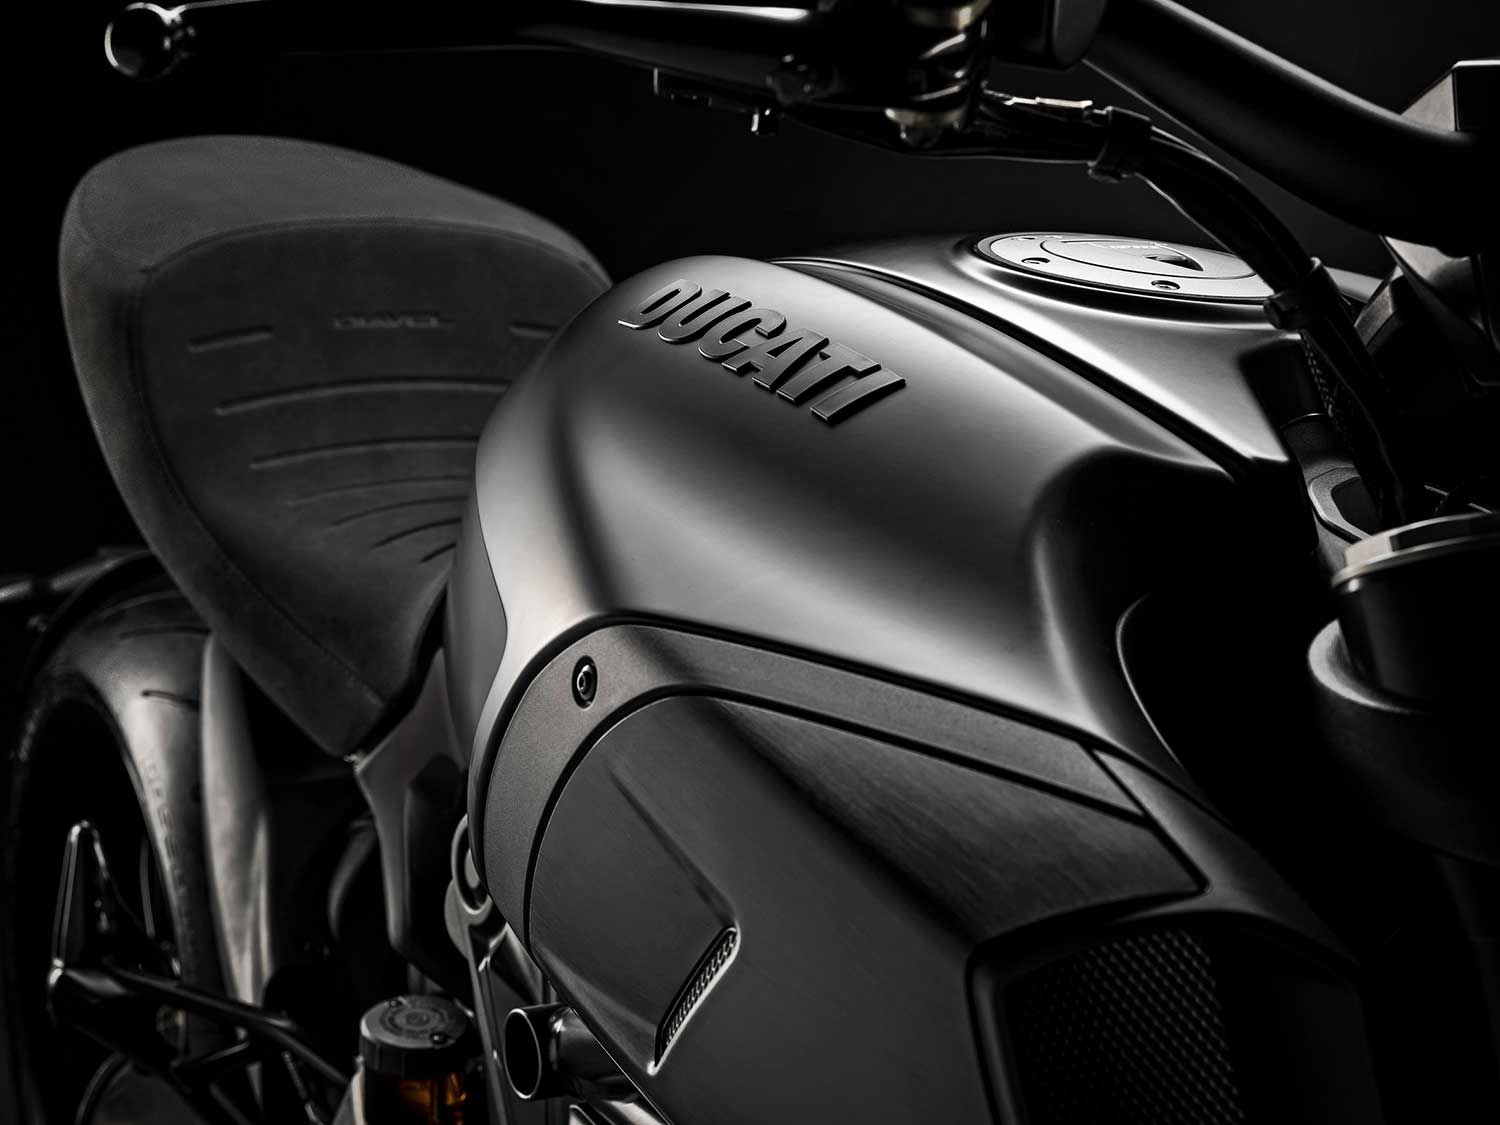 """Dark Stealth"" essentially means matte black for the main frame, with other components sporting different black finishes on the standard 1260 model."